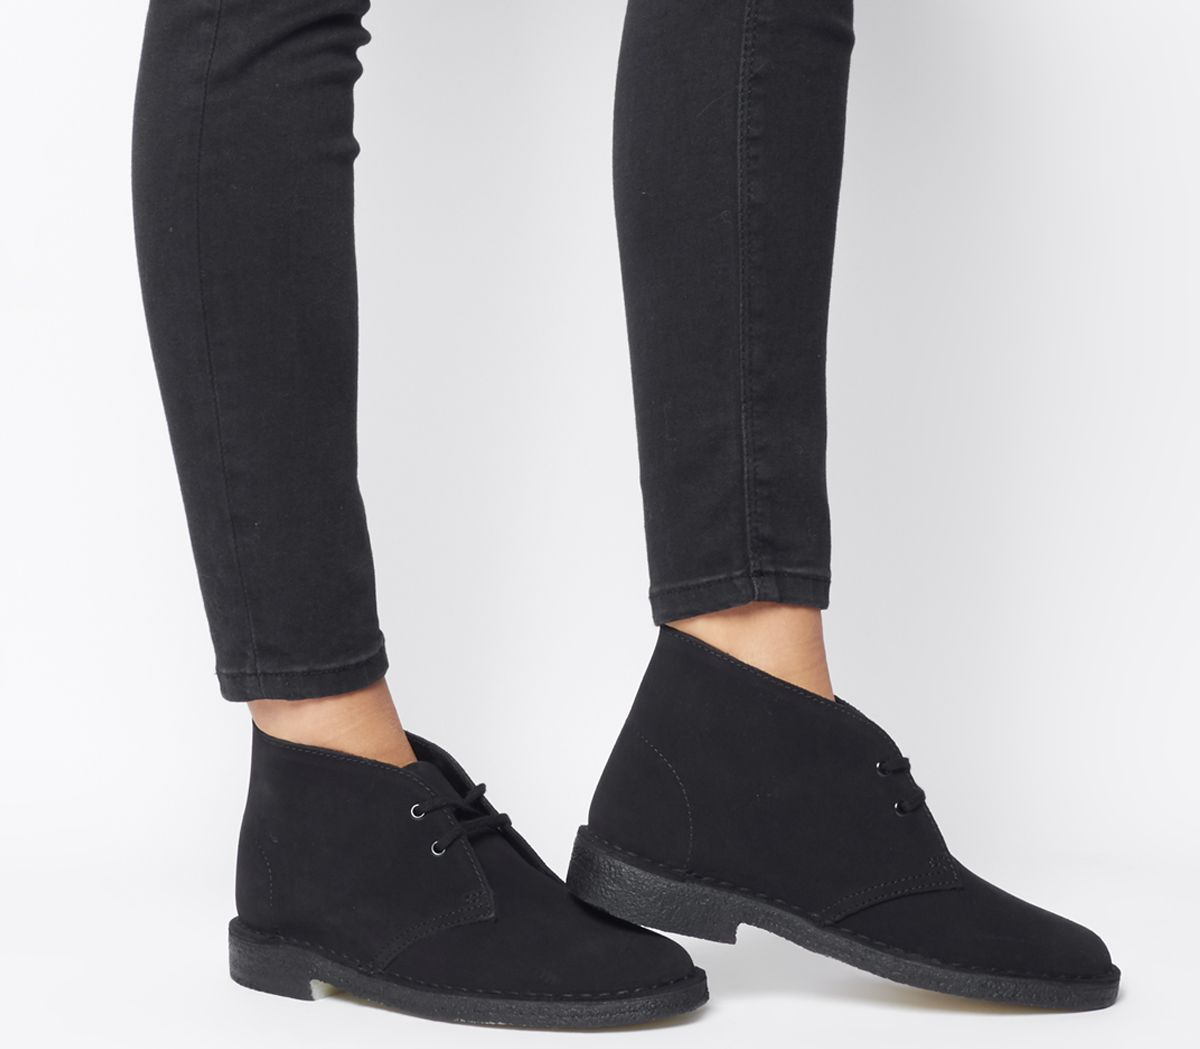 the latest 939f0 1f980 Clarks Originals Clarks Desert Boots Black Suede - Ankle Boots